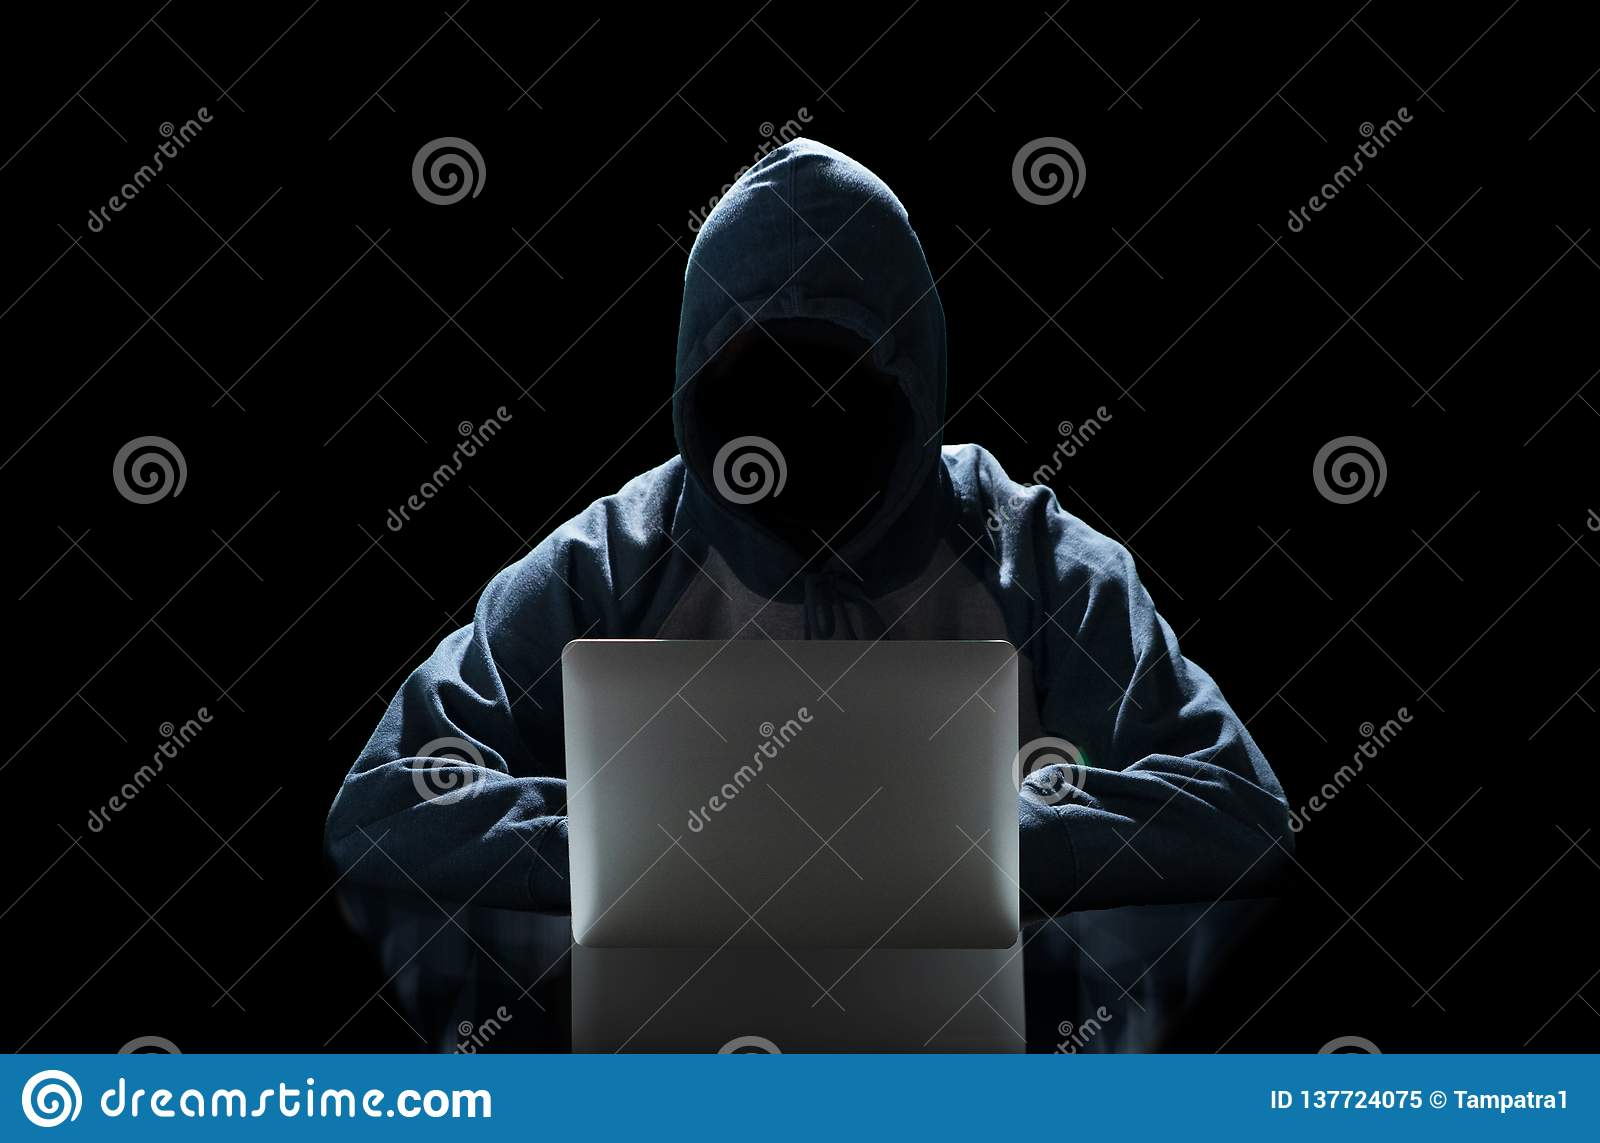 Hacker typing on a laptop isolated on black background with a computer monitor background matrix, Digital data code in security